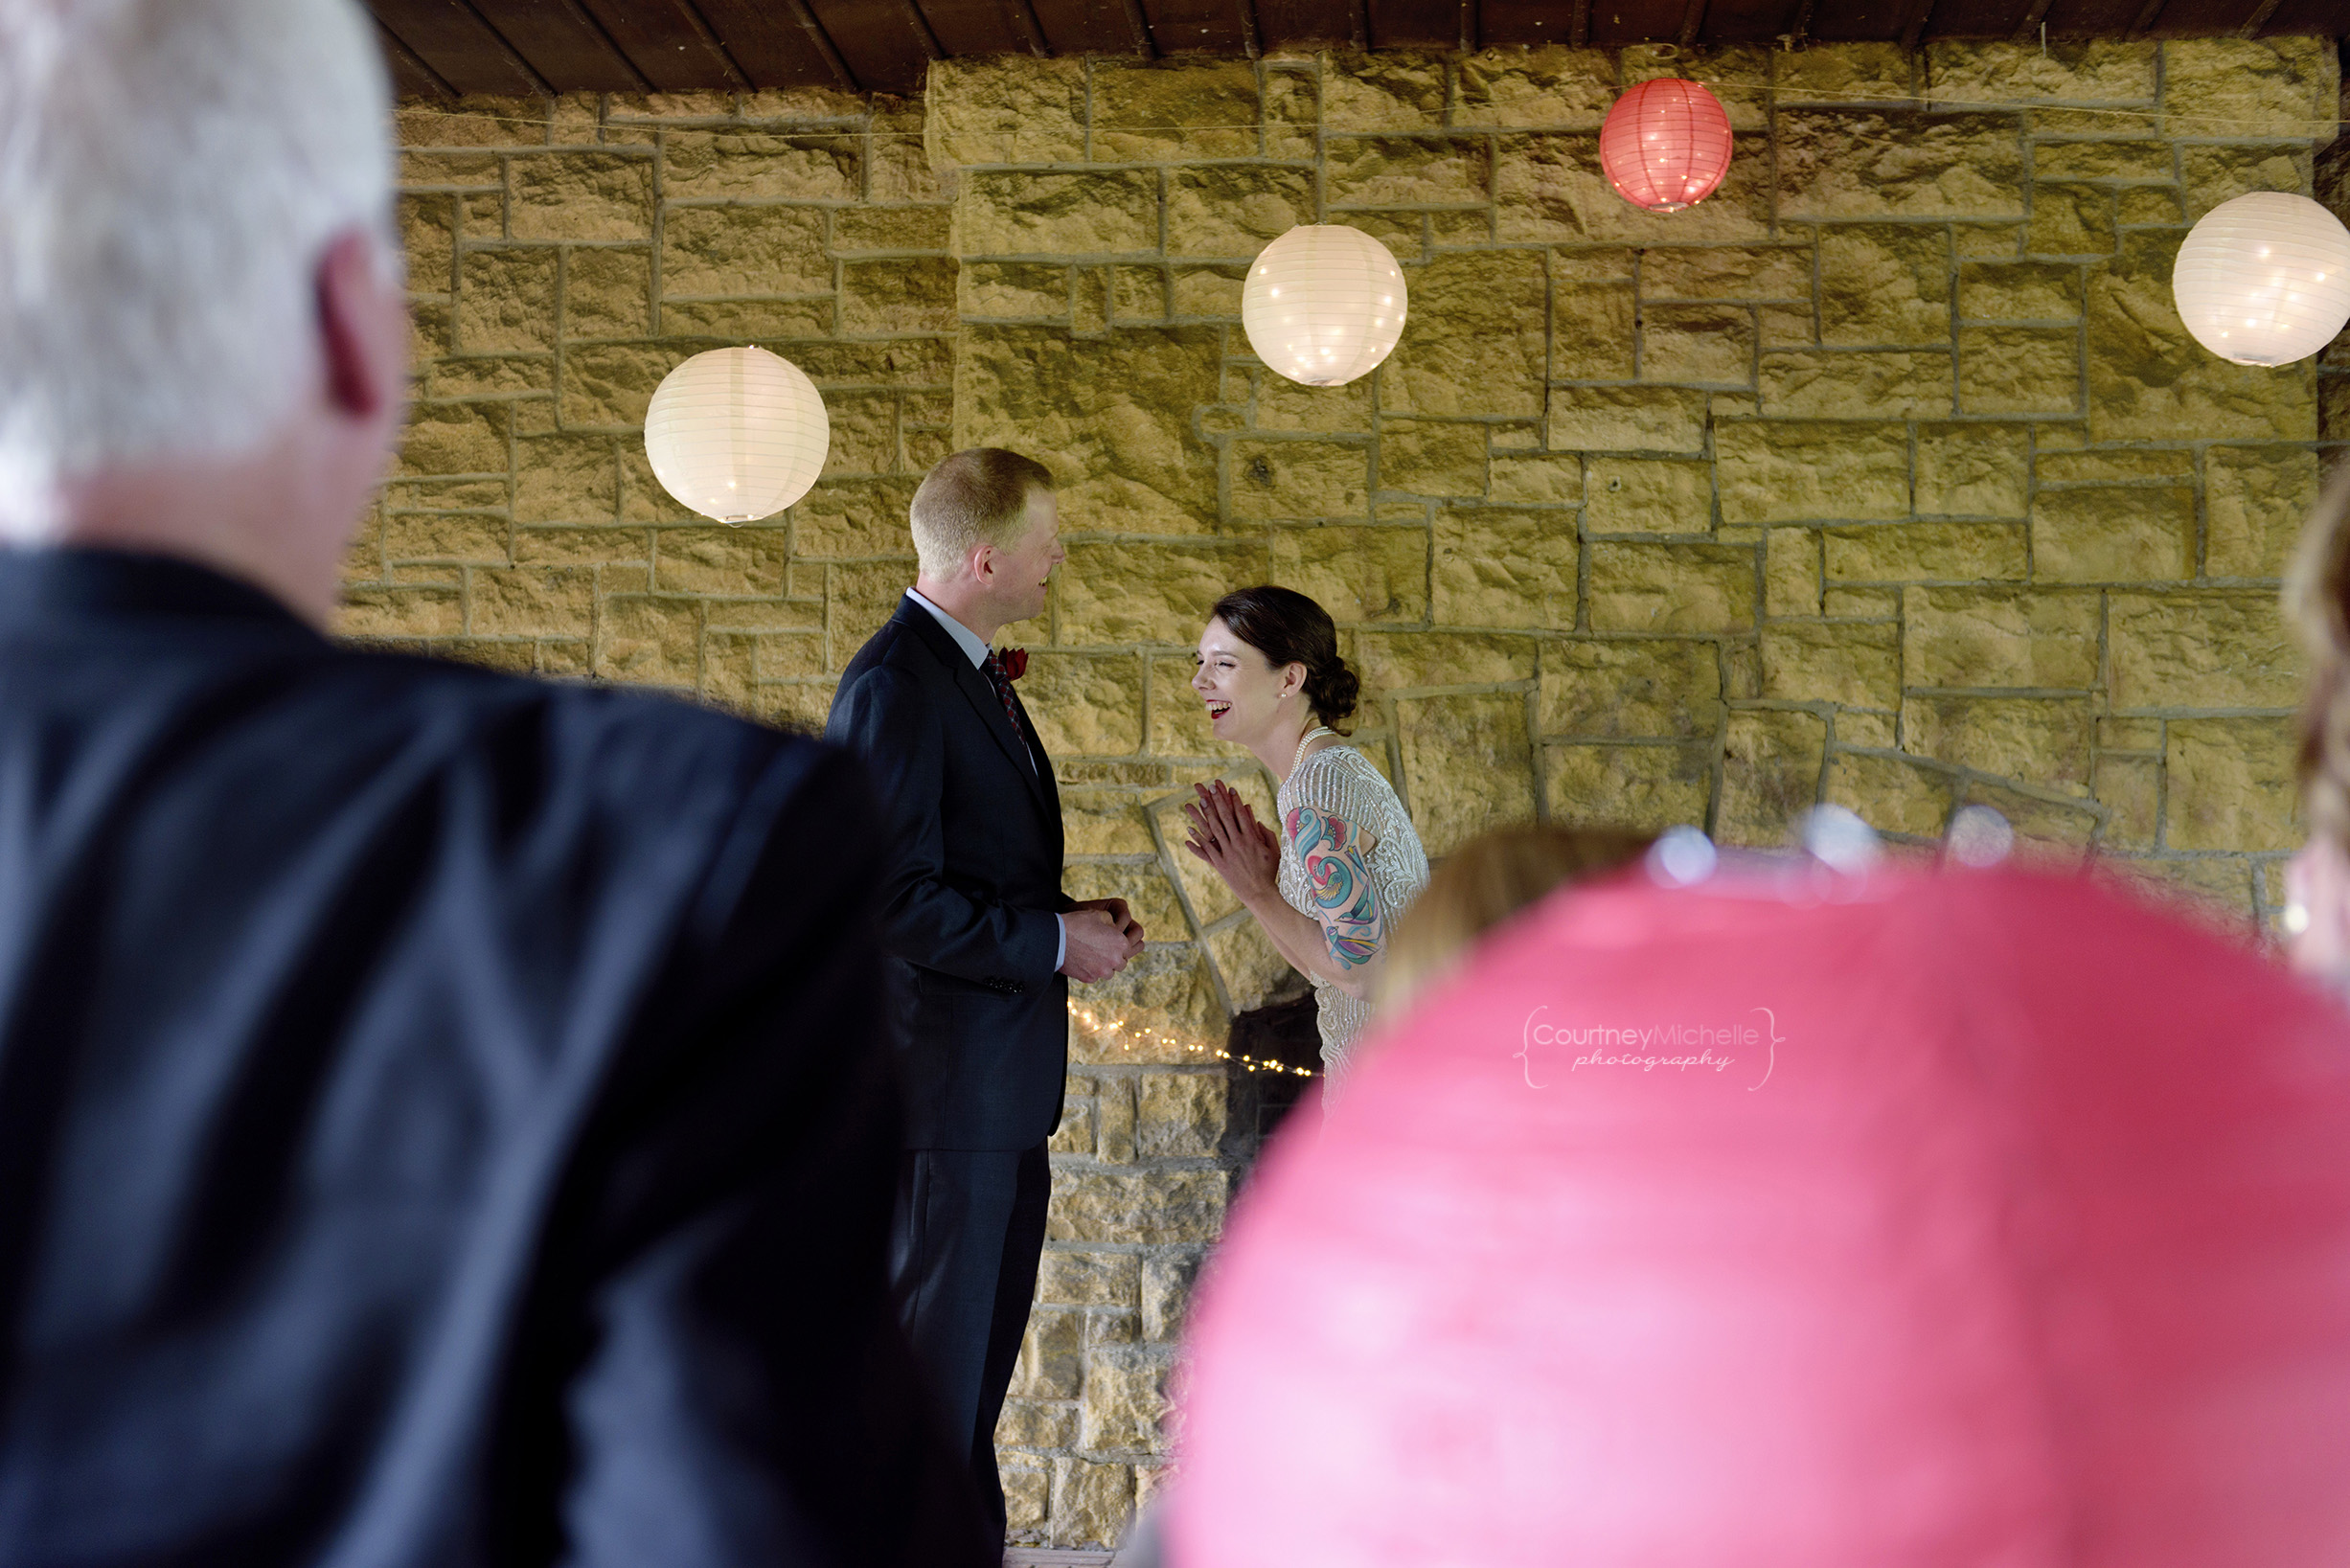 madison-vow-renewal-park-ceremony-photography-by-courtney-laper©COPYRIGHTCMP-0489.jpg